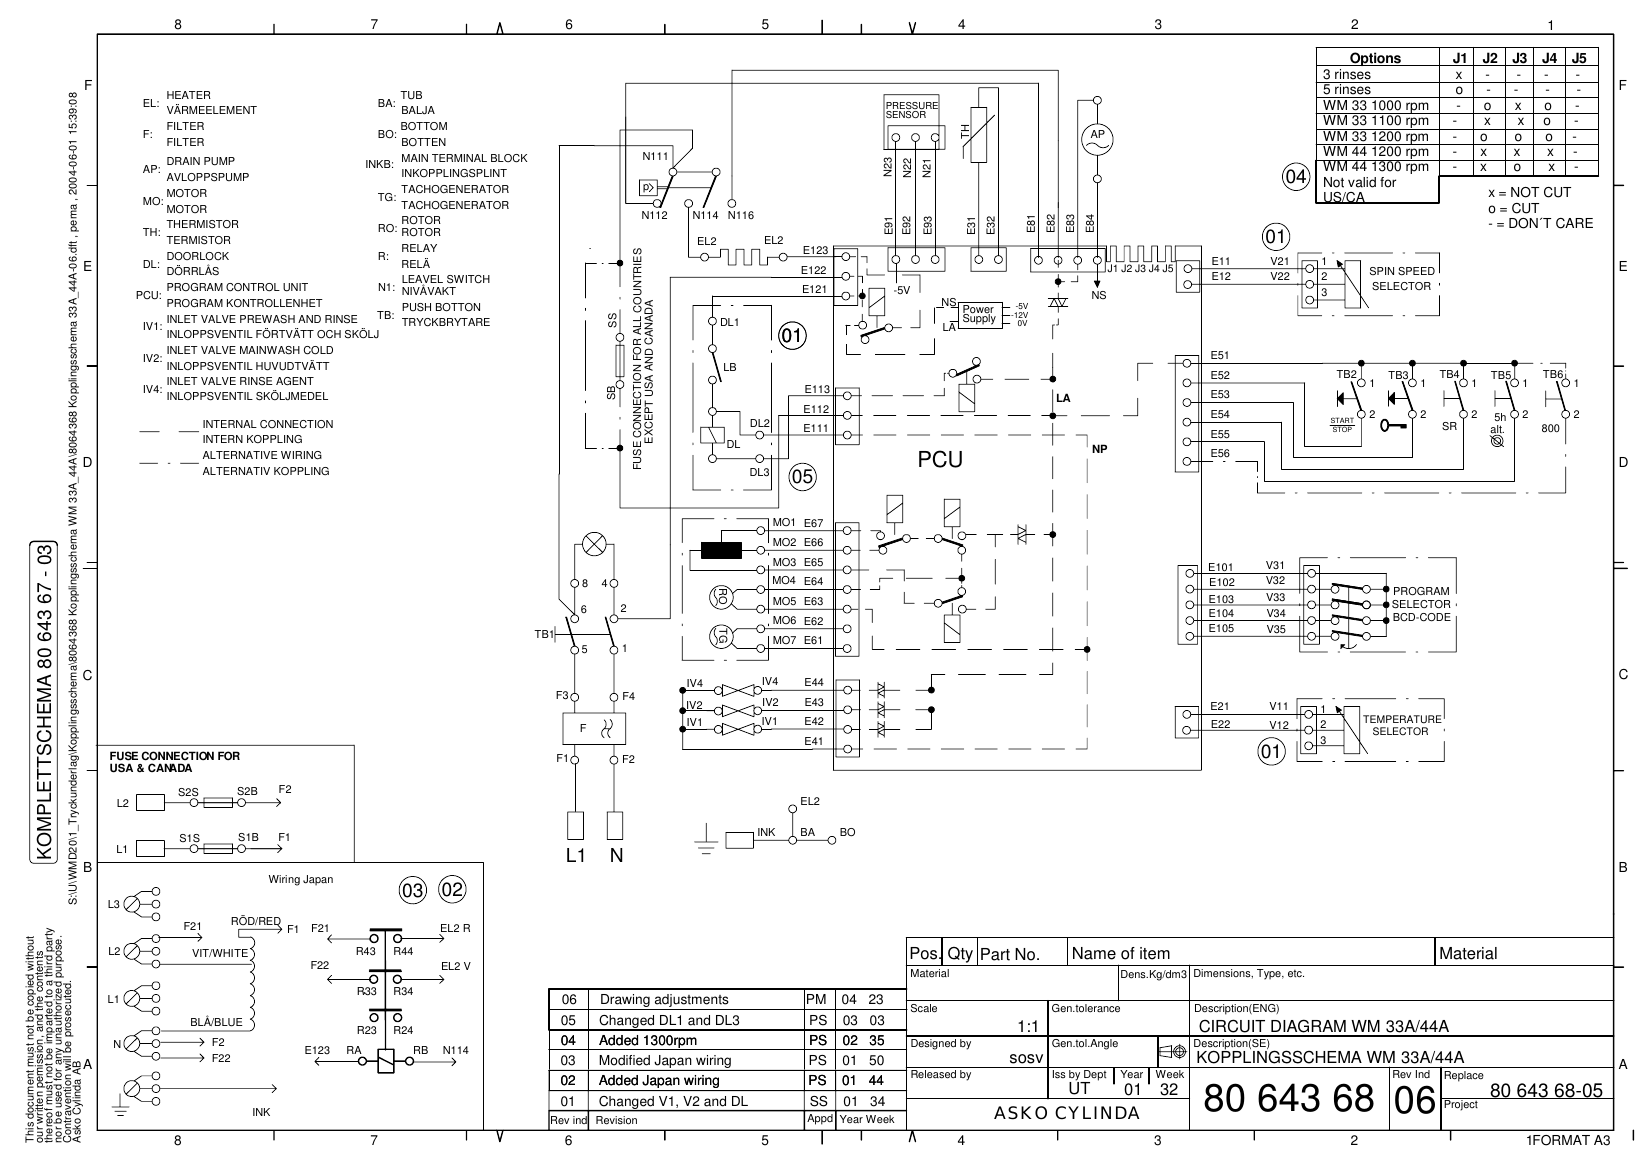 Wiring Diagram For Asko Dishwasher Diagrams Data Base Kitchenaid 8064368 Kopplingsschema 33a 44a 06 Dft Washing Machine Wm Washer Motor At